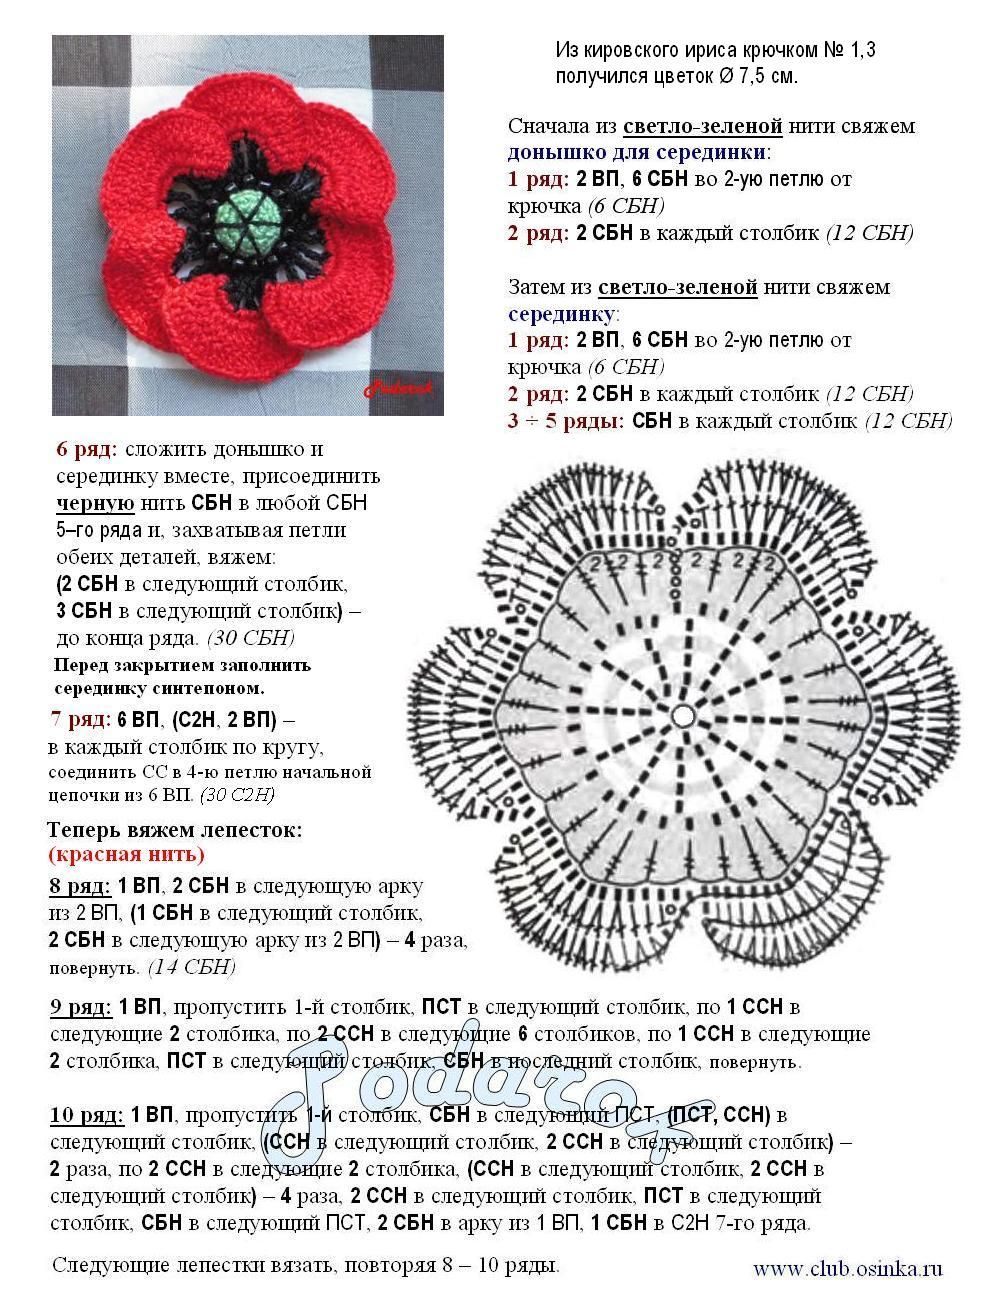 Another red flower with diagram | crochets | Pinterest | Flores ...